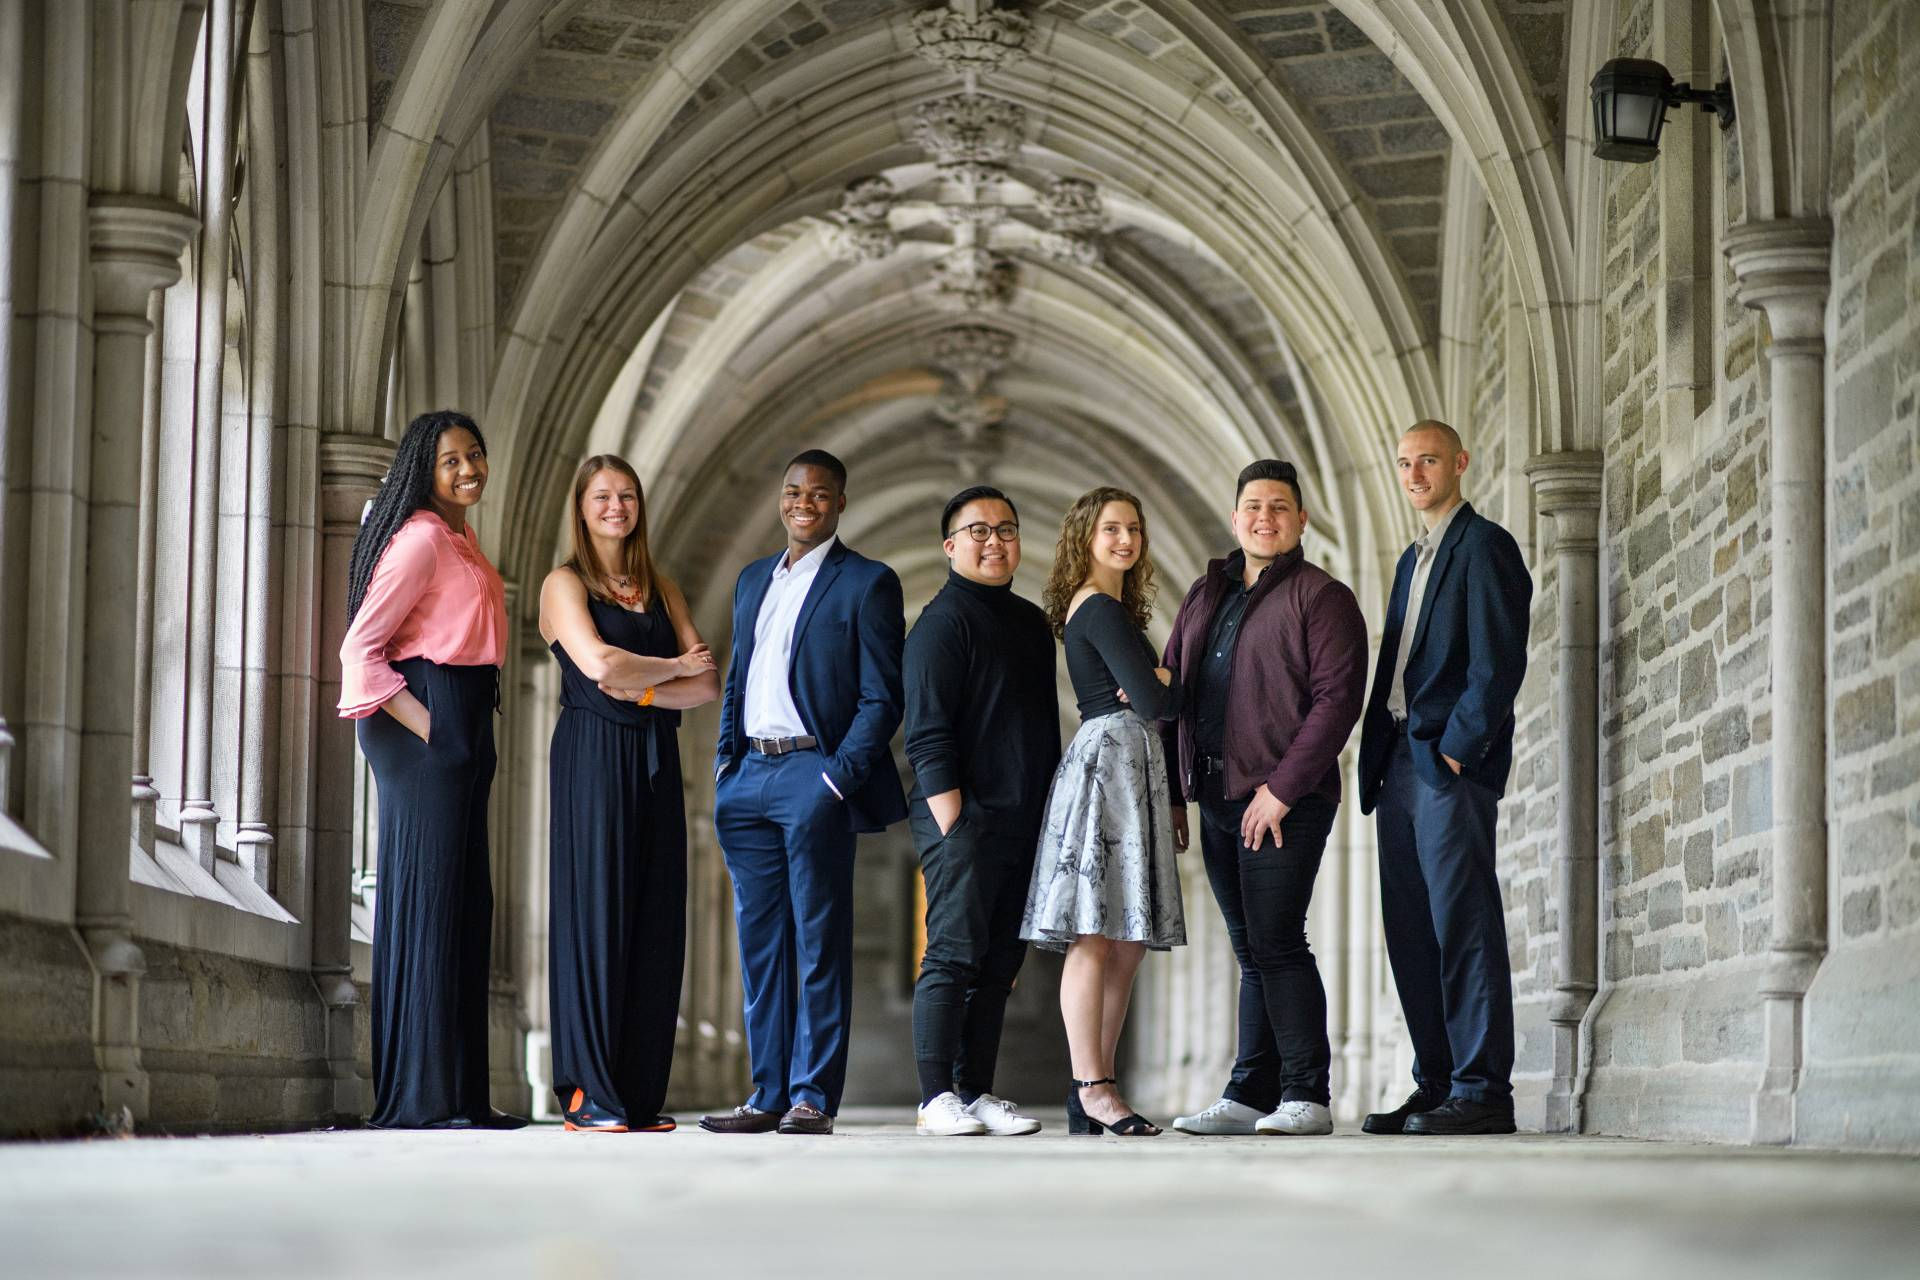 Nenna Ibe, Hannah Paynter, Moyin Opeyemi, G.J. Sevillano, Marcia Brown, Samuel Vilchez Santiago and Kyle Lang standing in an iconic archway